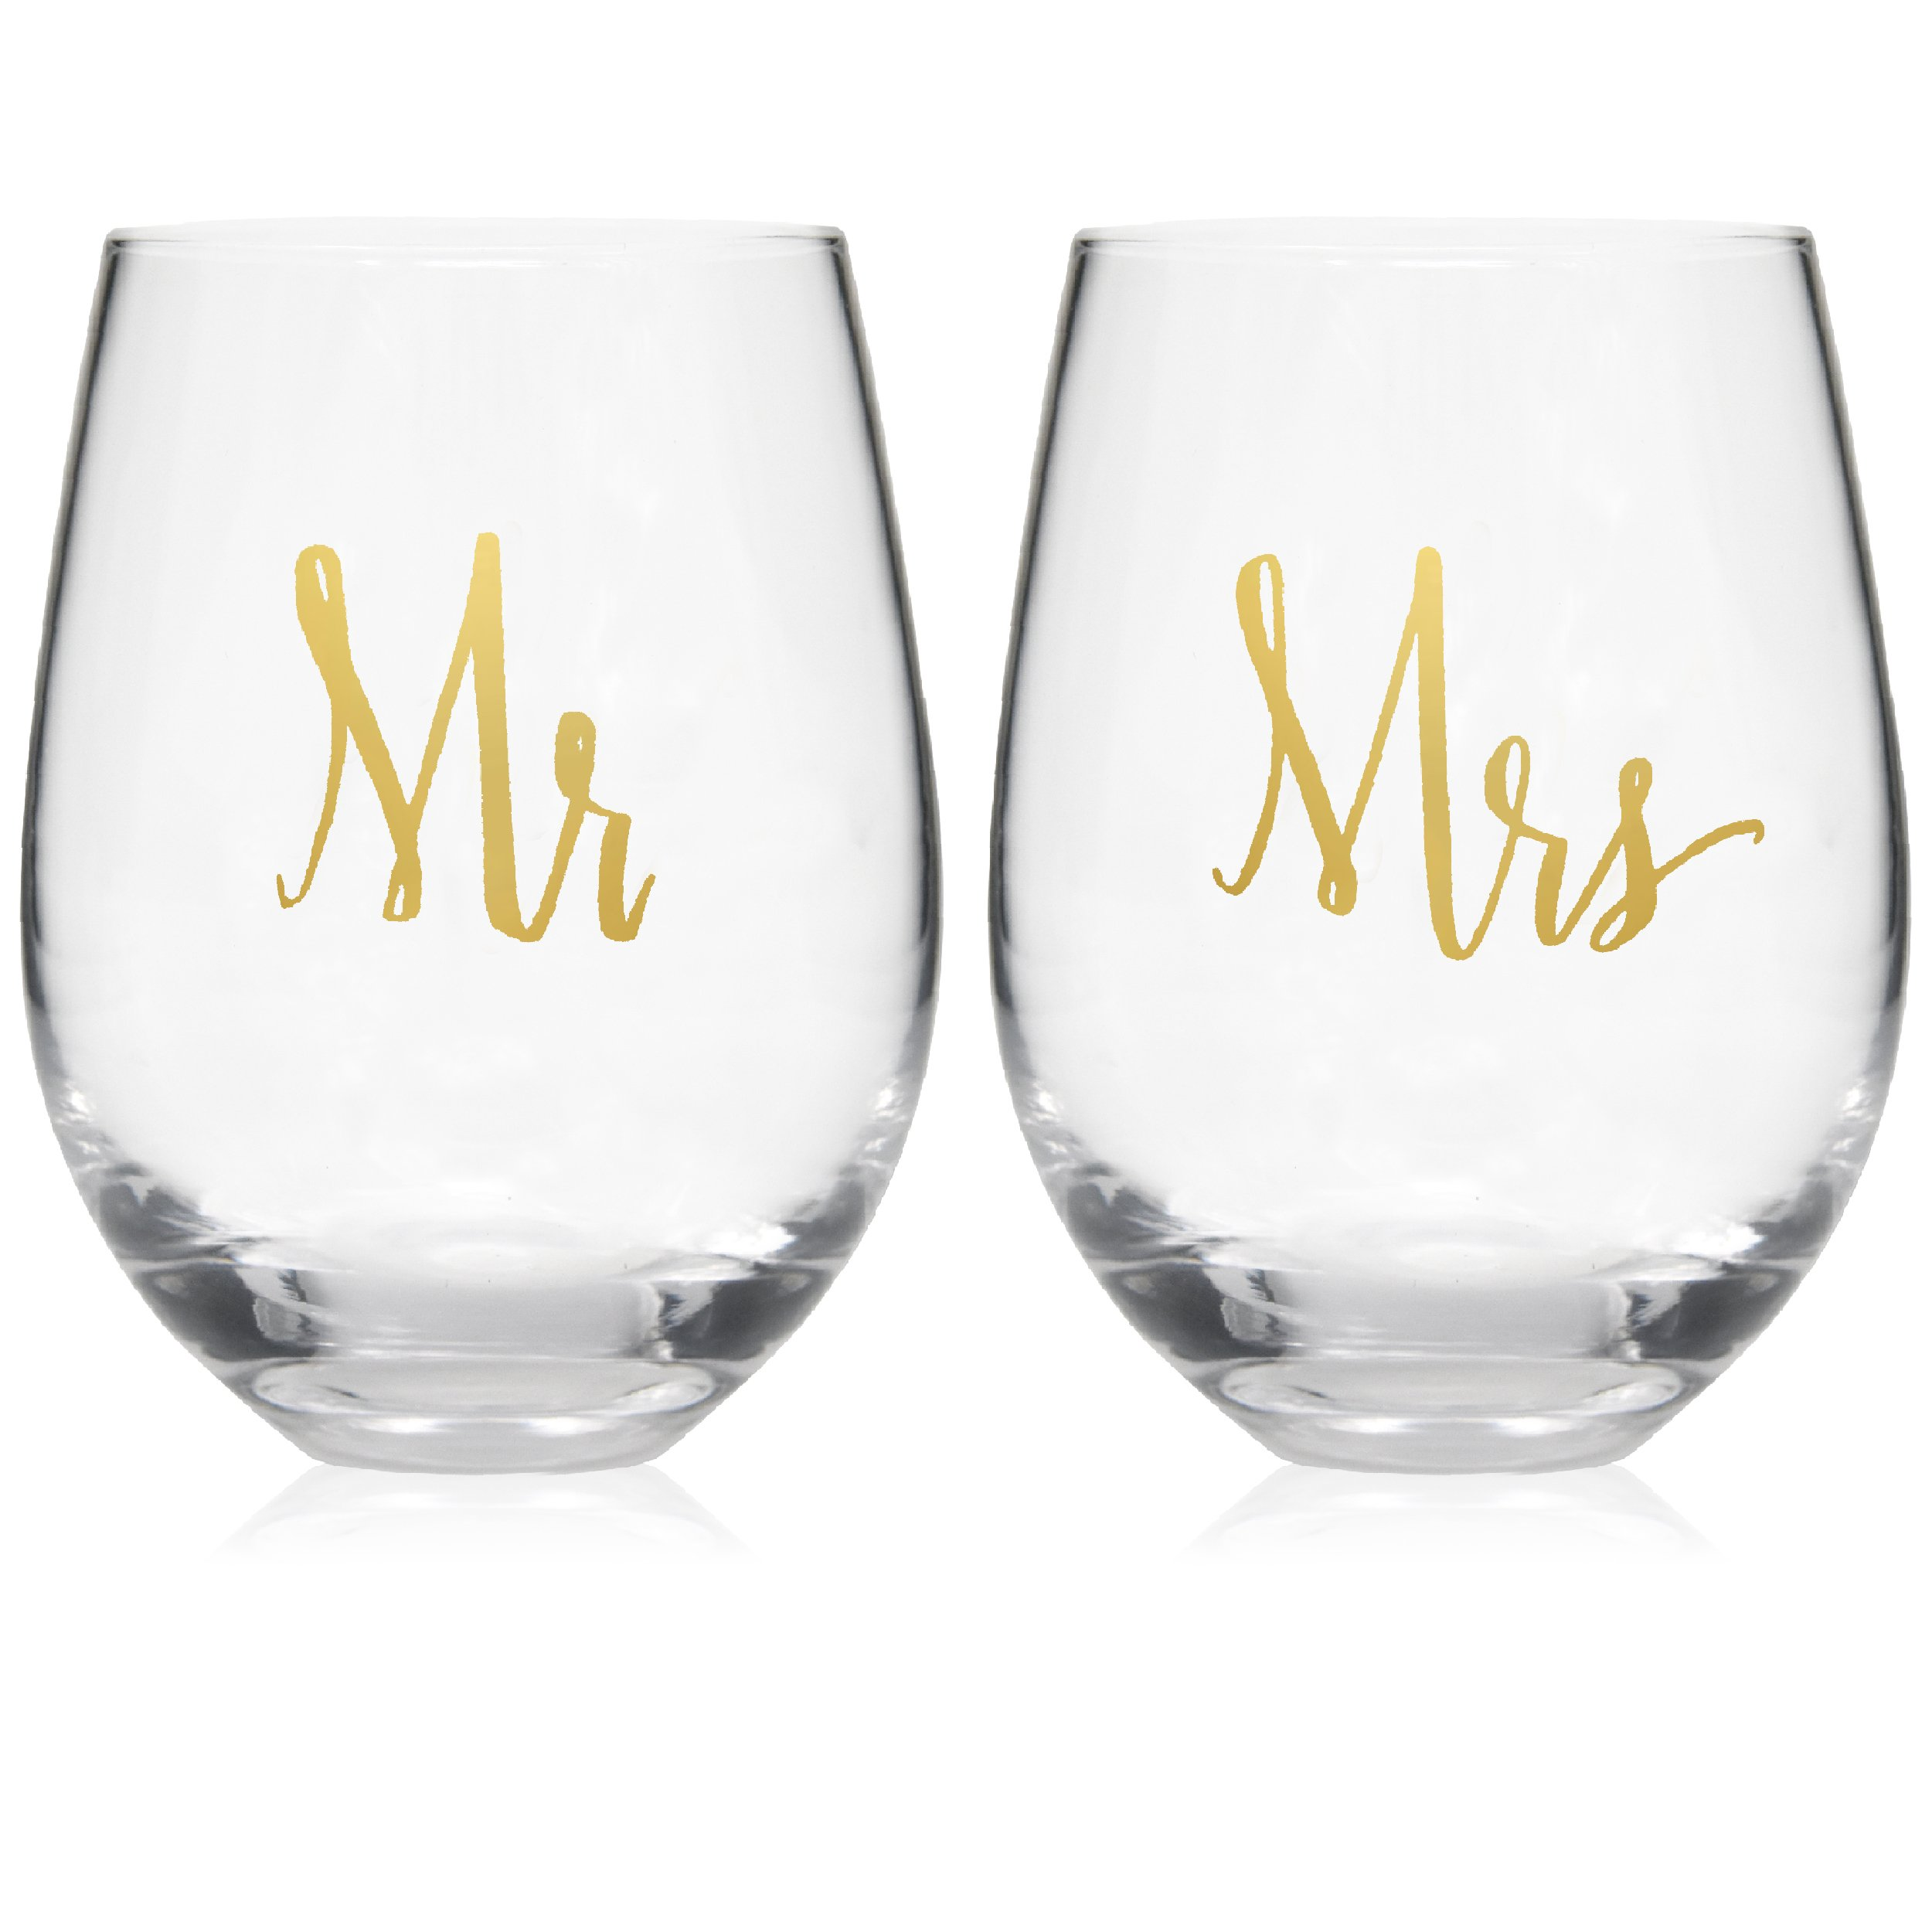 Mr and Mrs Stemless Wine Glasses Set of 2 for Married Couples, His & Hers, Wife & Husband, Bride & Groom, Engagement, Wedding and Anniversary Gifts & Presents; 20 Oz Coffee Cup Mugs by Gift Boutique